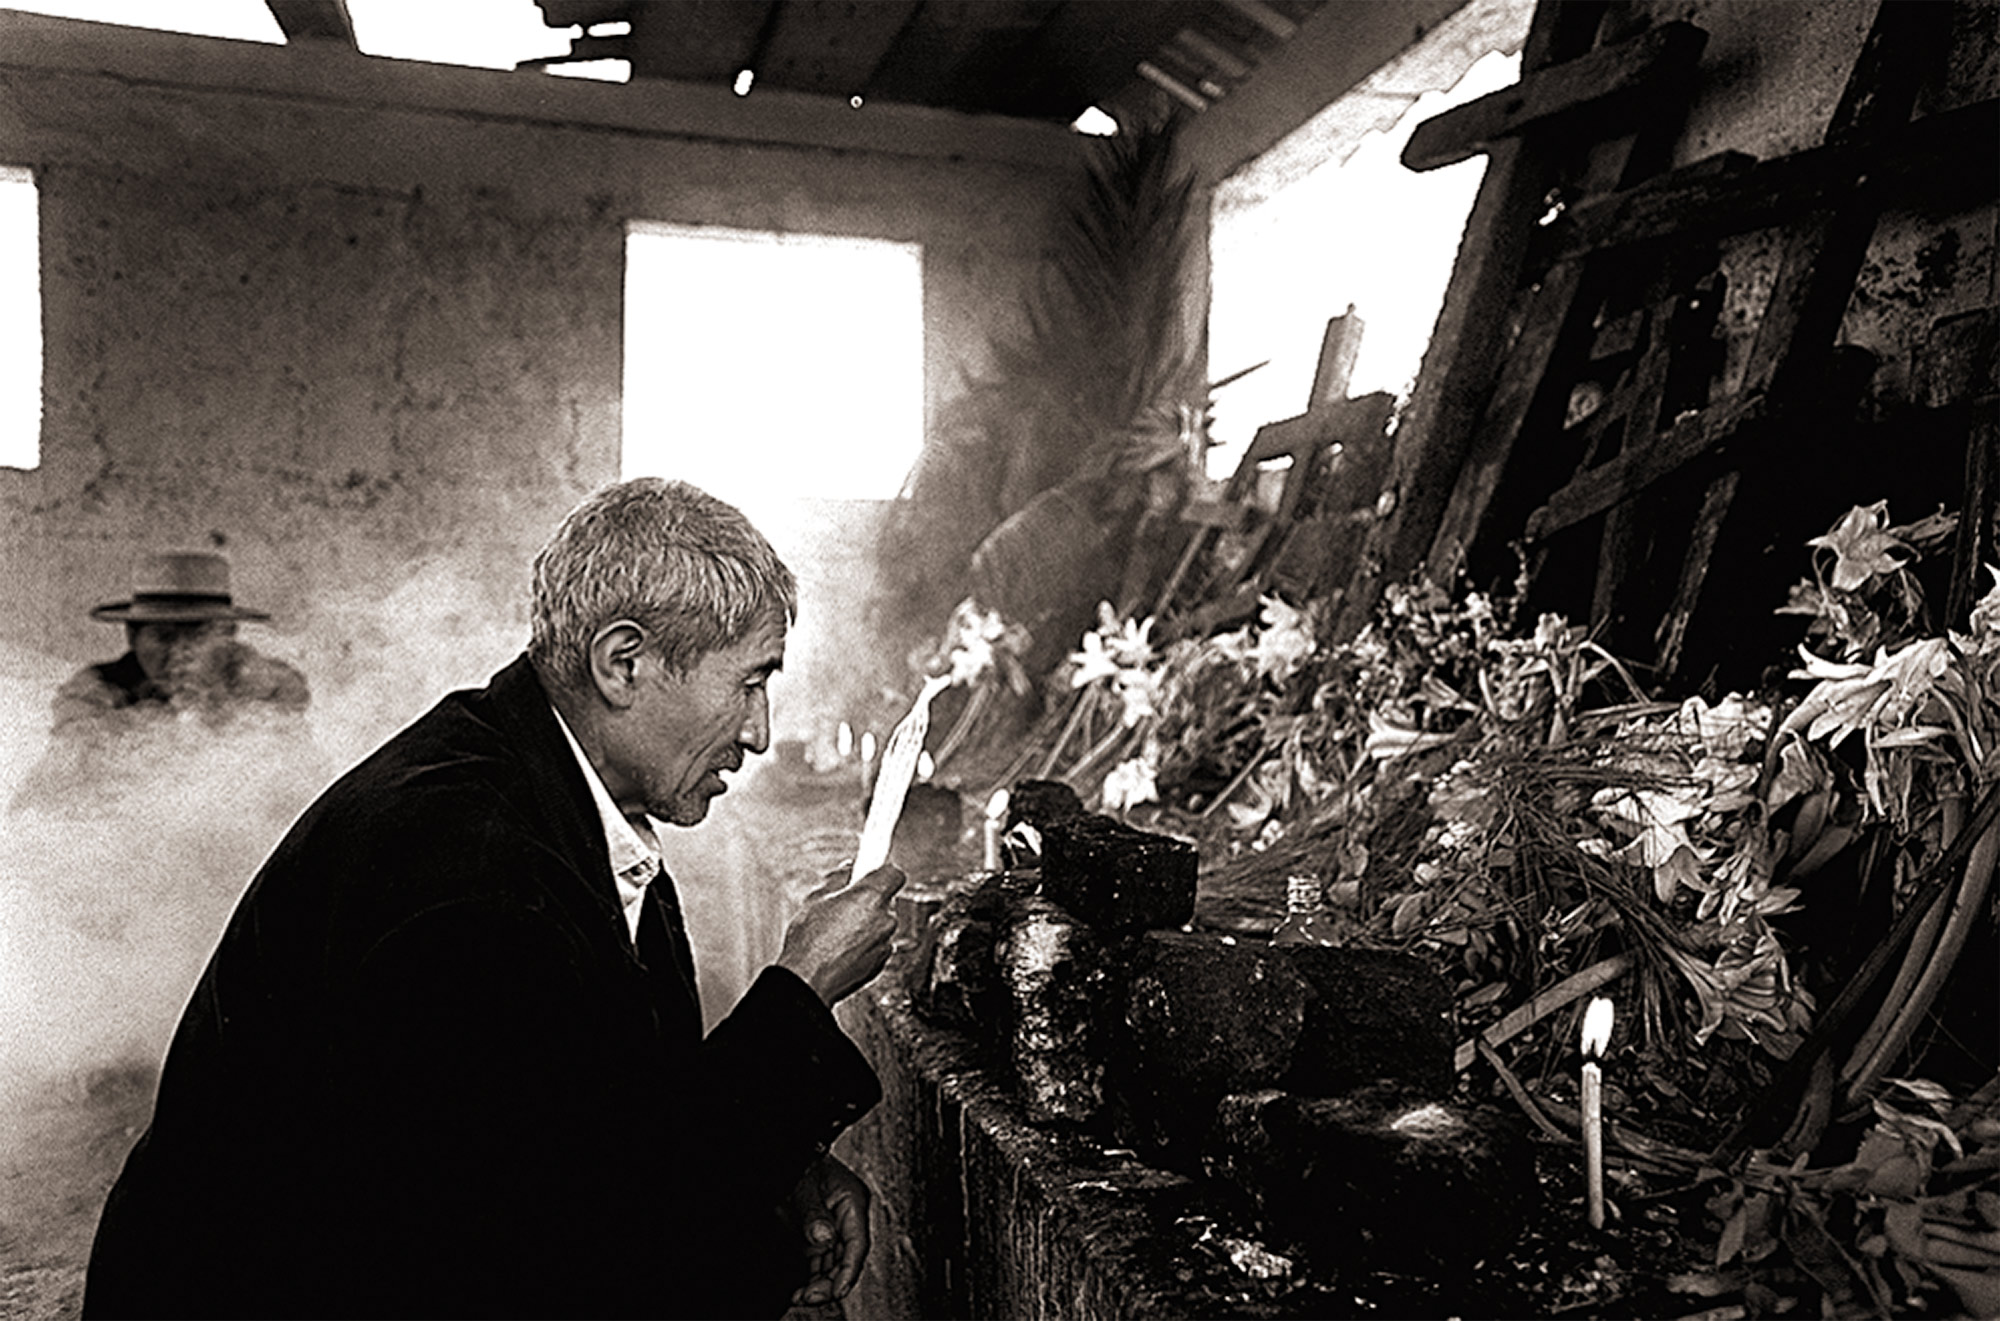 Mayan priests Pedro Corio and Tomas Brito visit the Cementerio General in Nebaj to perform Mayan rituals for the diseappeared of Guatemala's 36-year civil war.